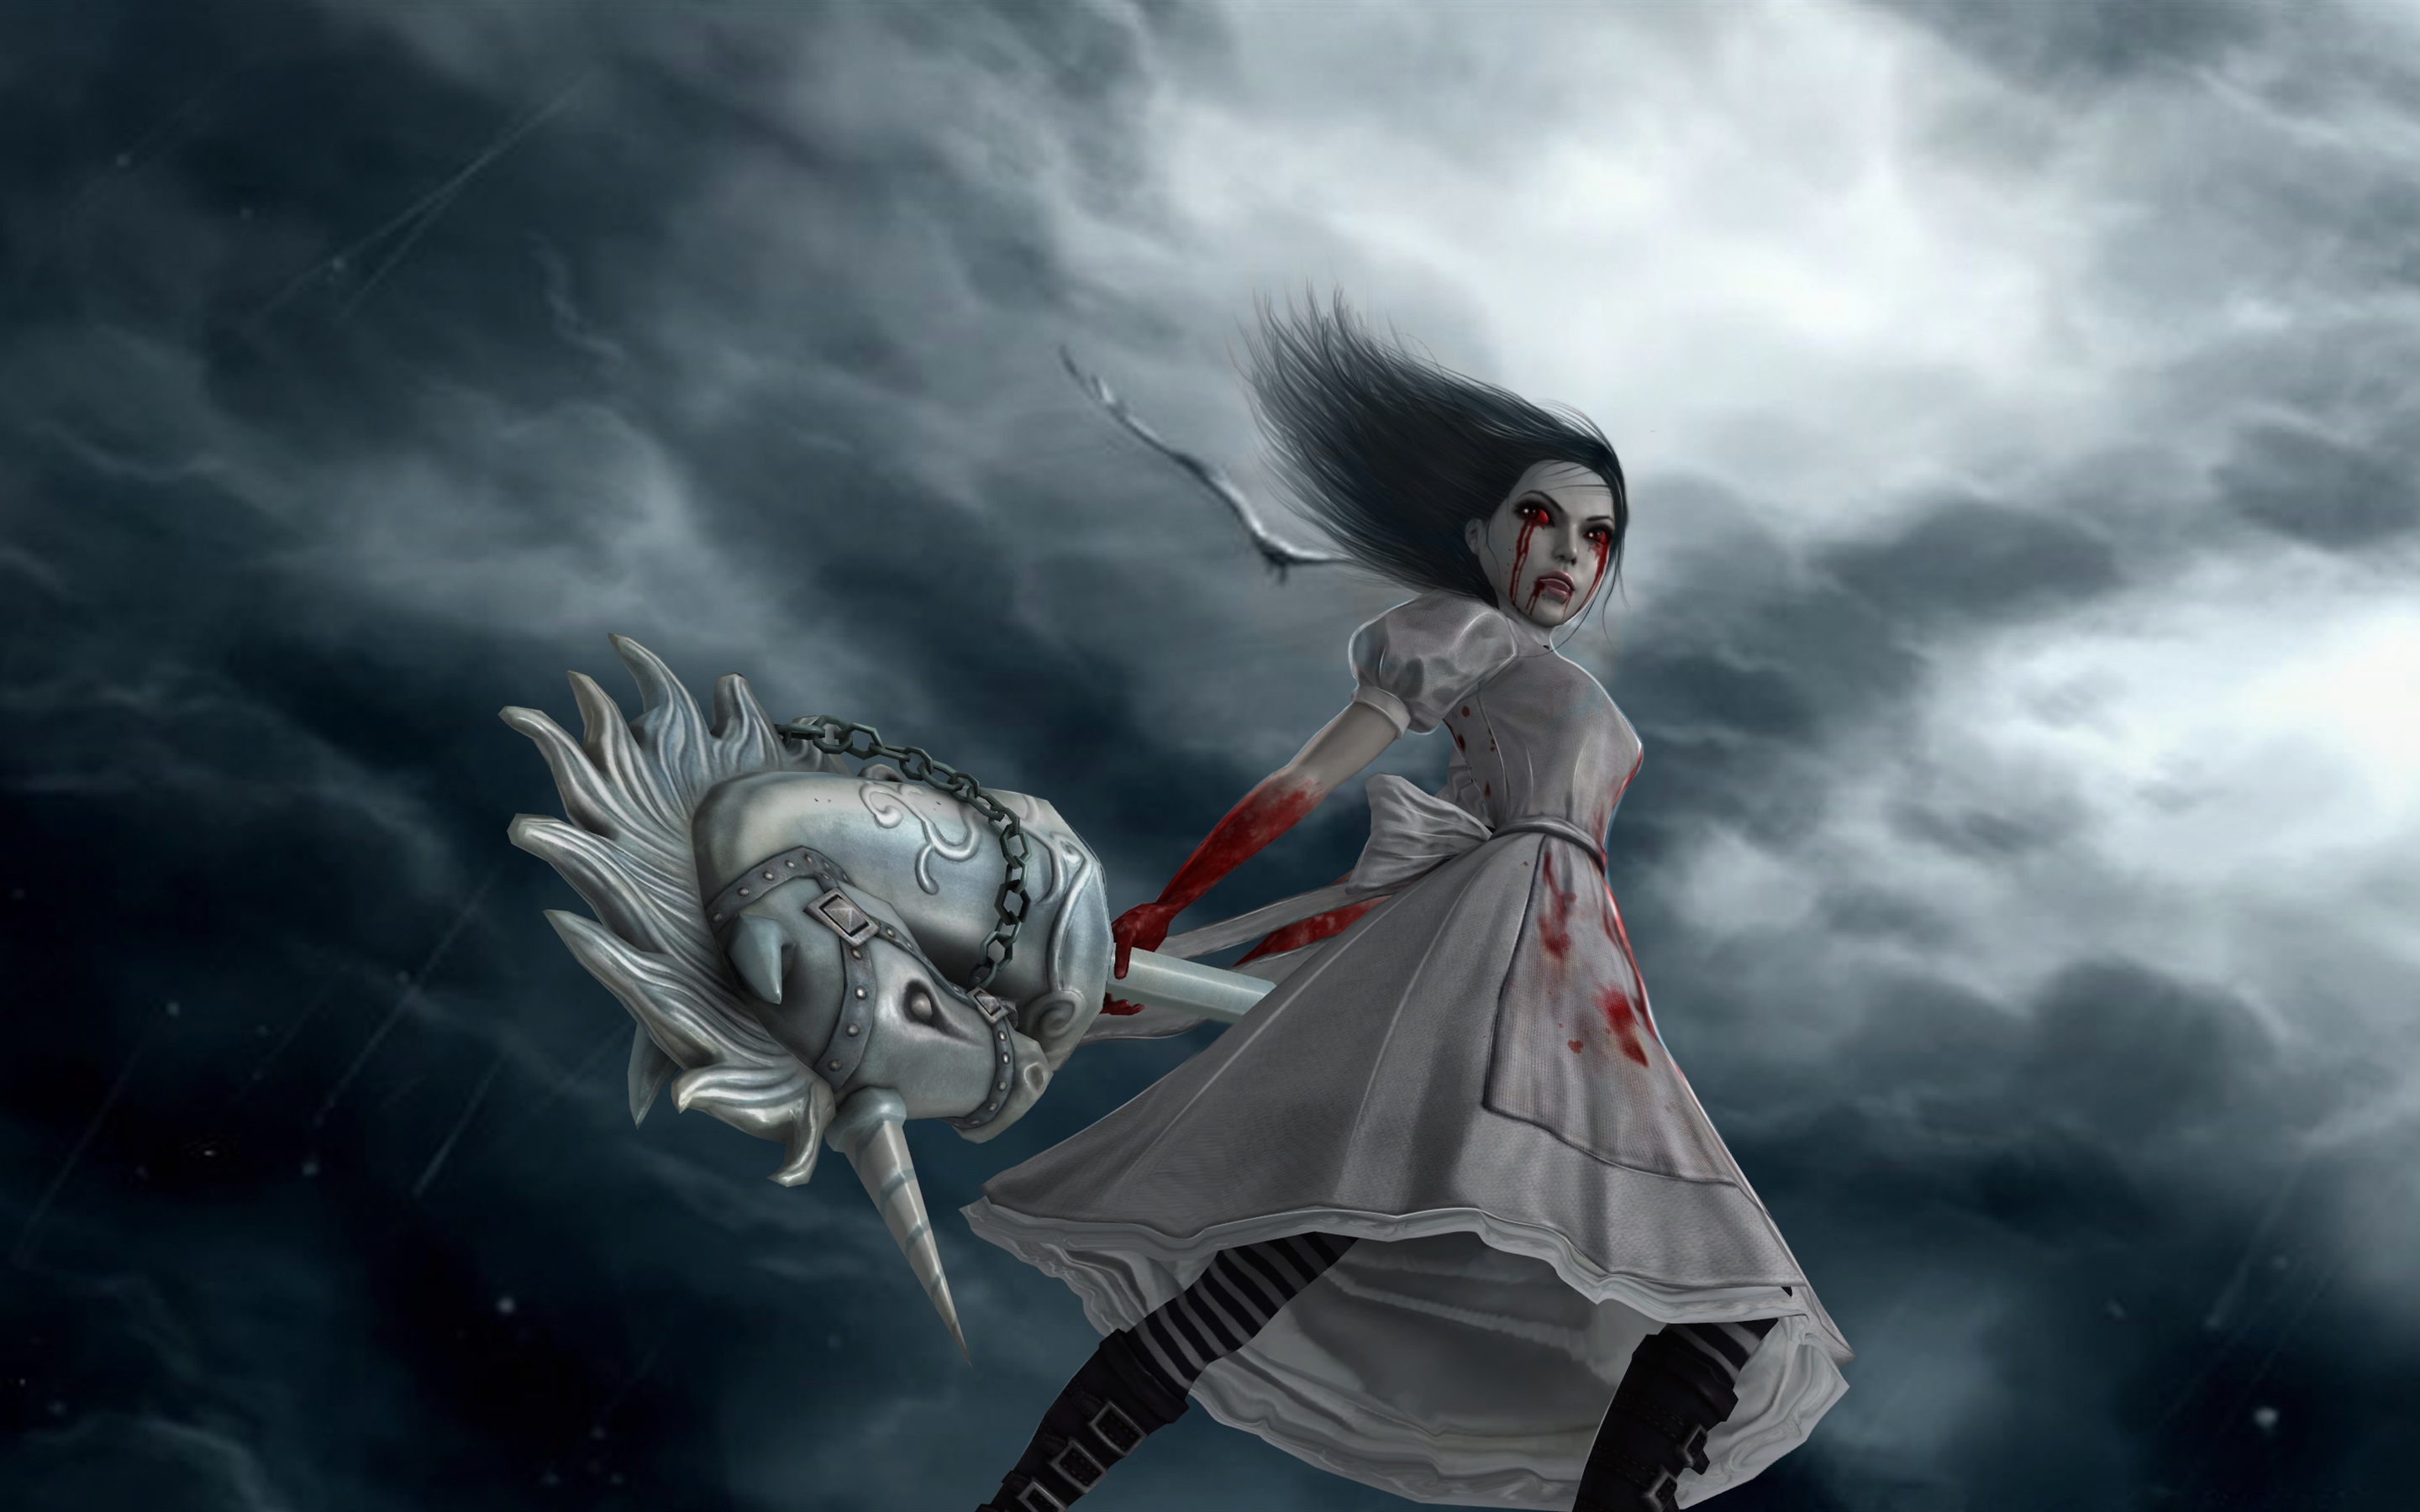 Wallpaper Alice Madness Returns Games Art Picture 2880x1800 Hd